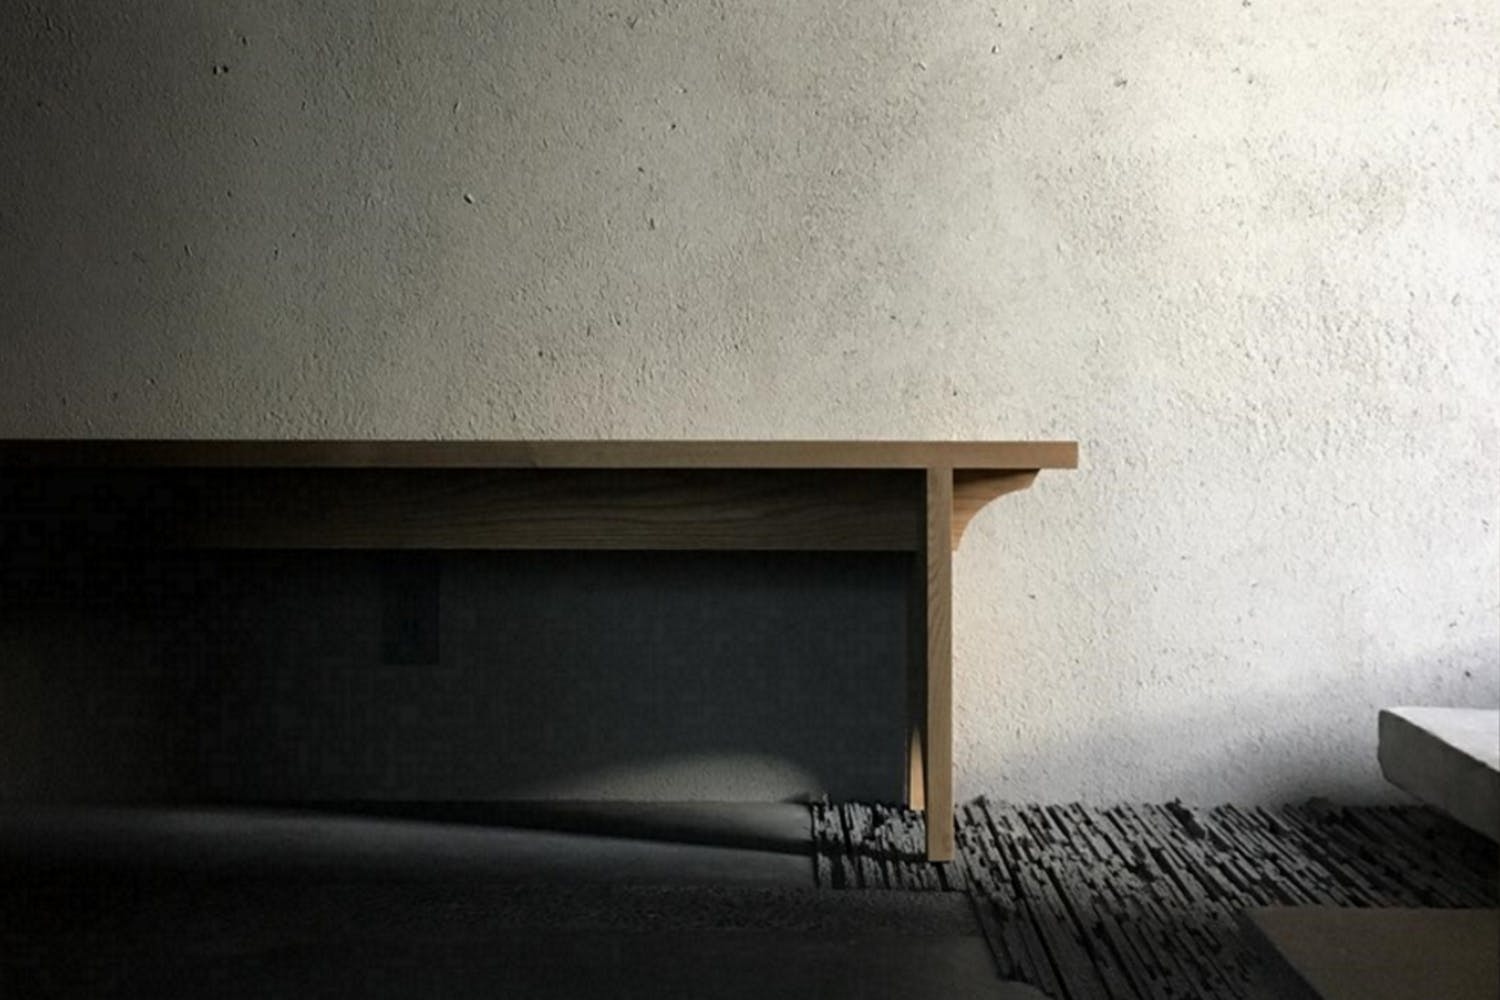 Kyoto Komatsu Residences - handmade bench in waiting area of rooftop space